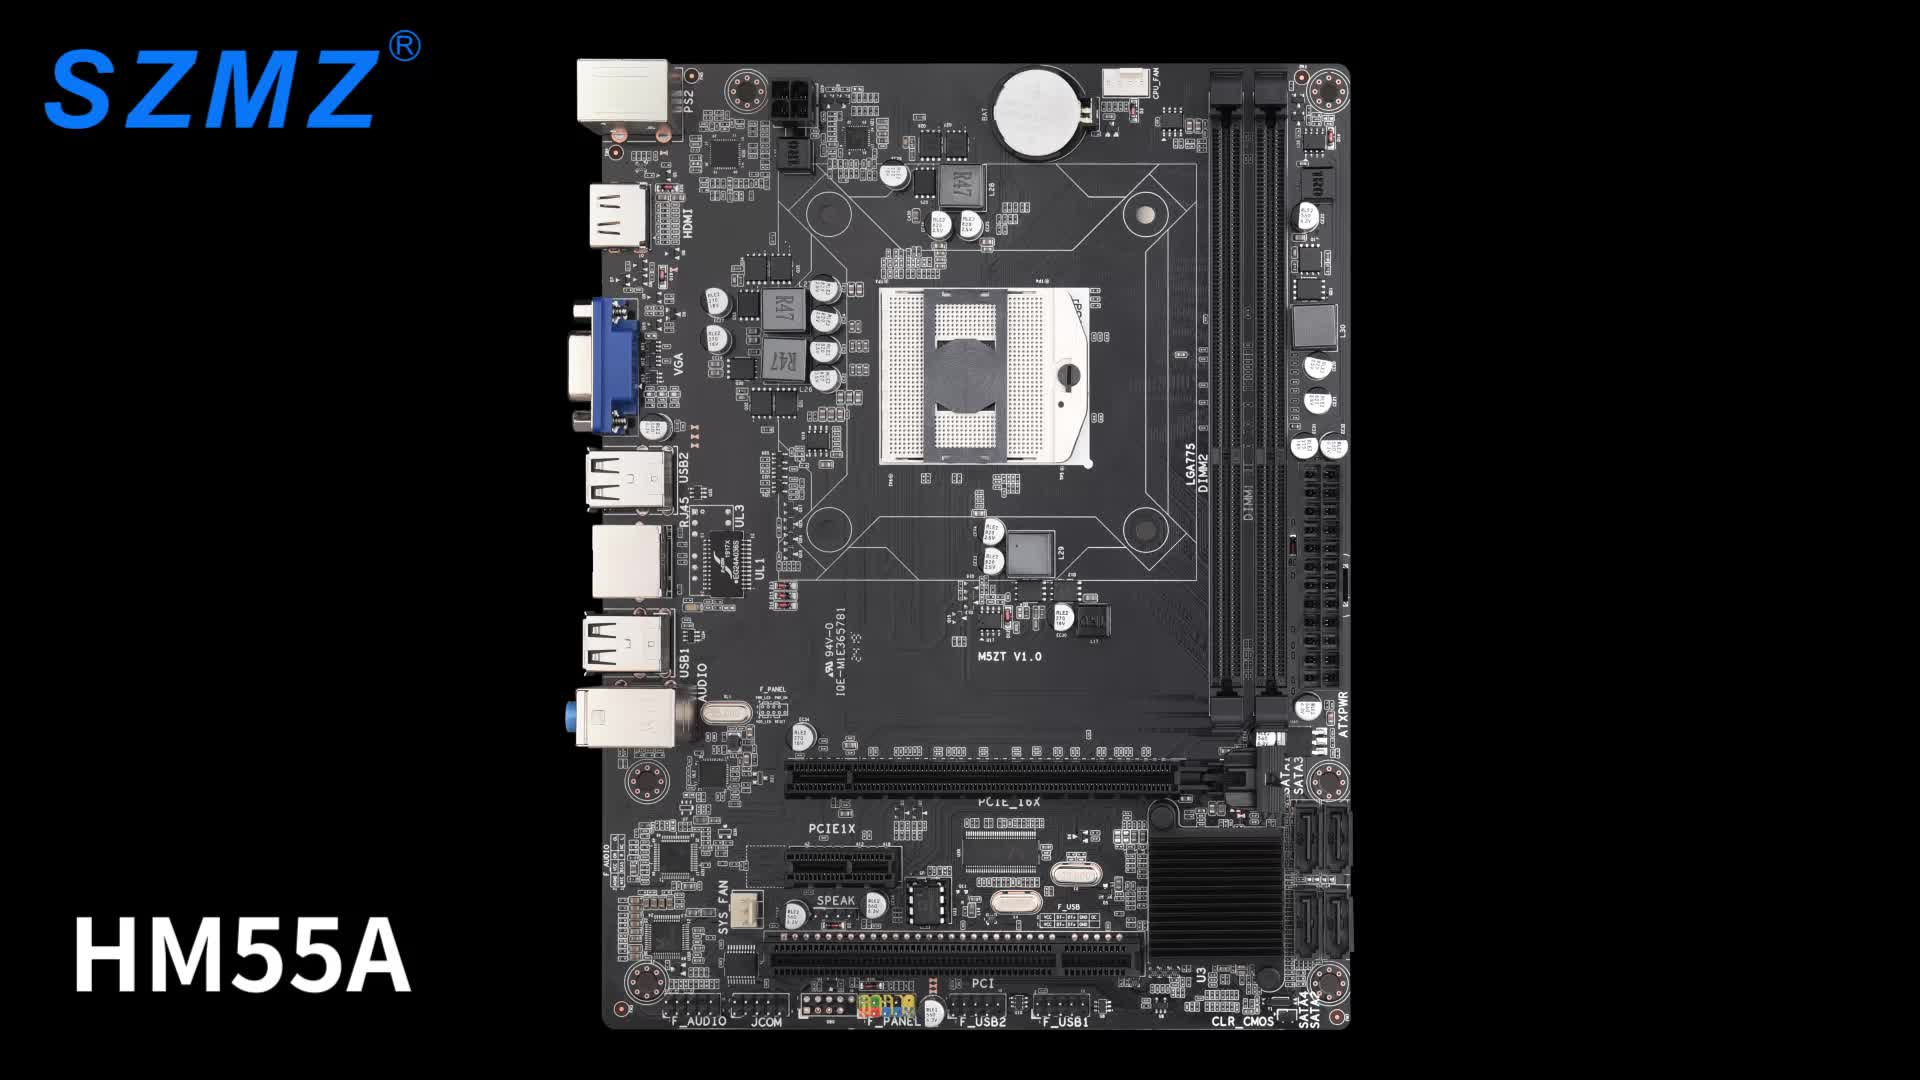 Best HM55 mini motherboard with pga988 i3/i5/i7 cpu DDR3 ram for gaming